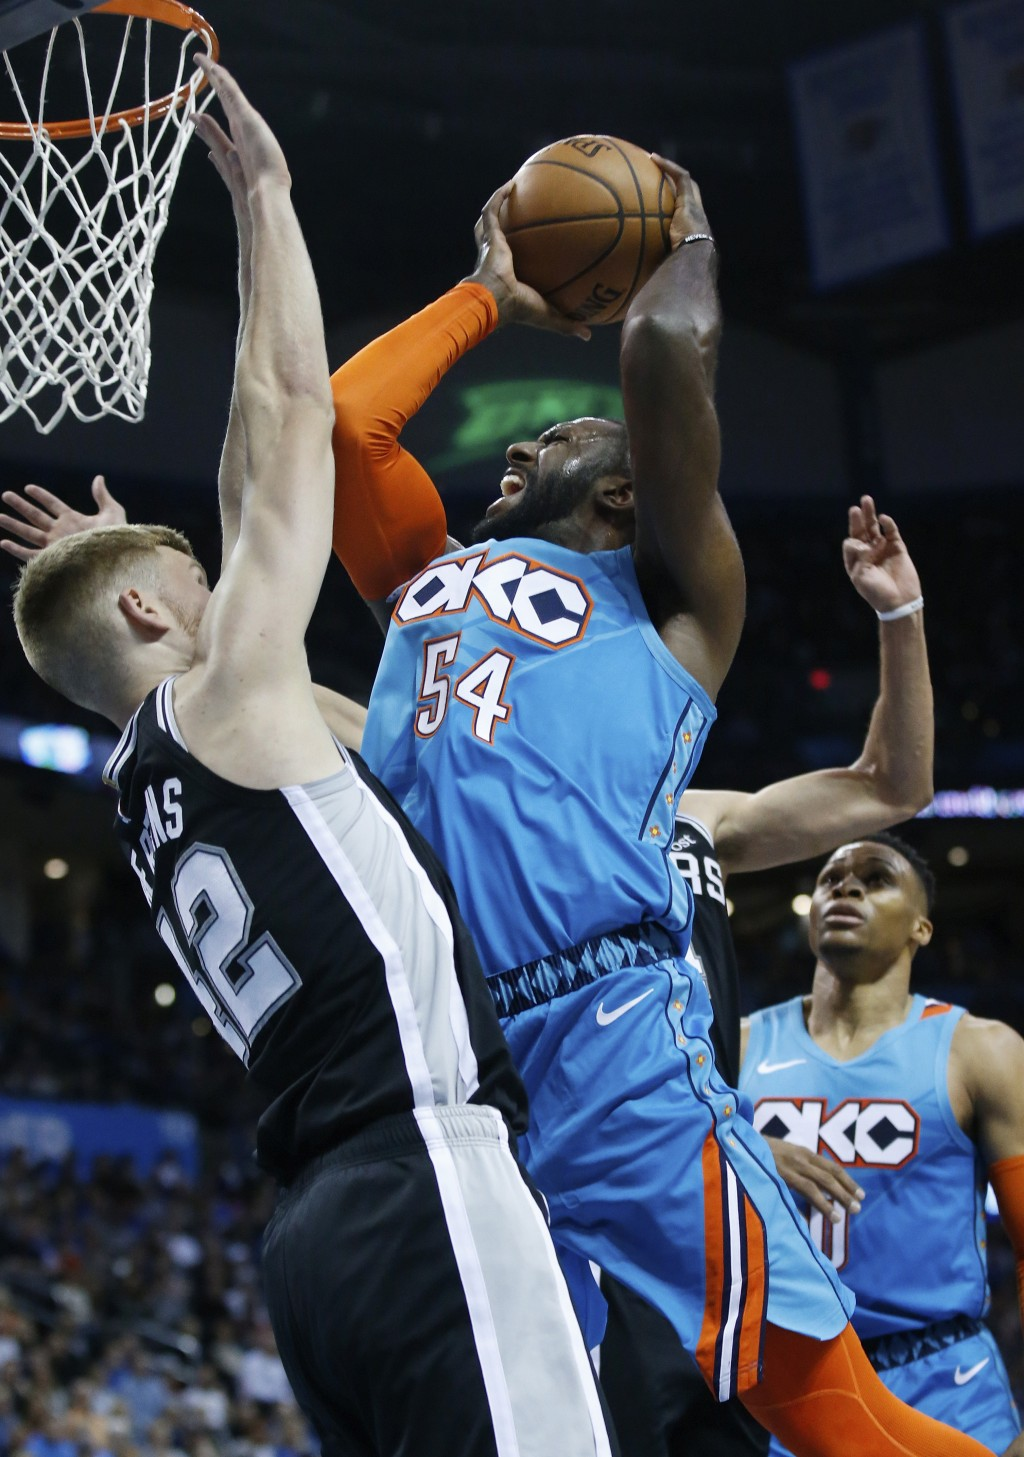 Oklahoma City Thunder forward Patrick Patterson (54) shoots as San Antonio Spurs forward Davis Bertans (42) defends in the first half of an NBA basket